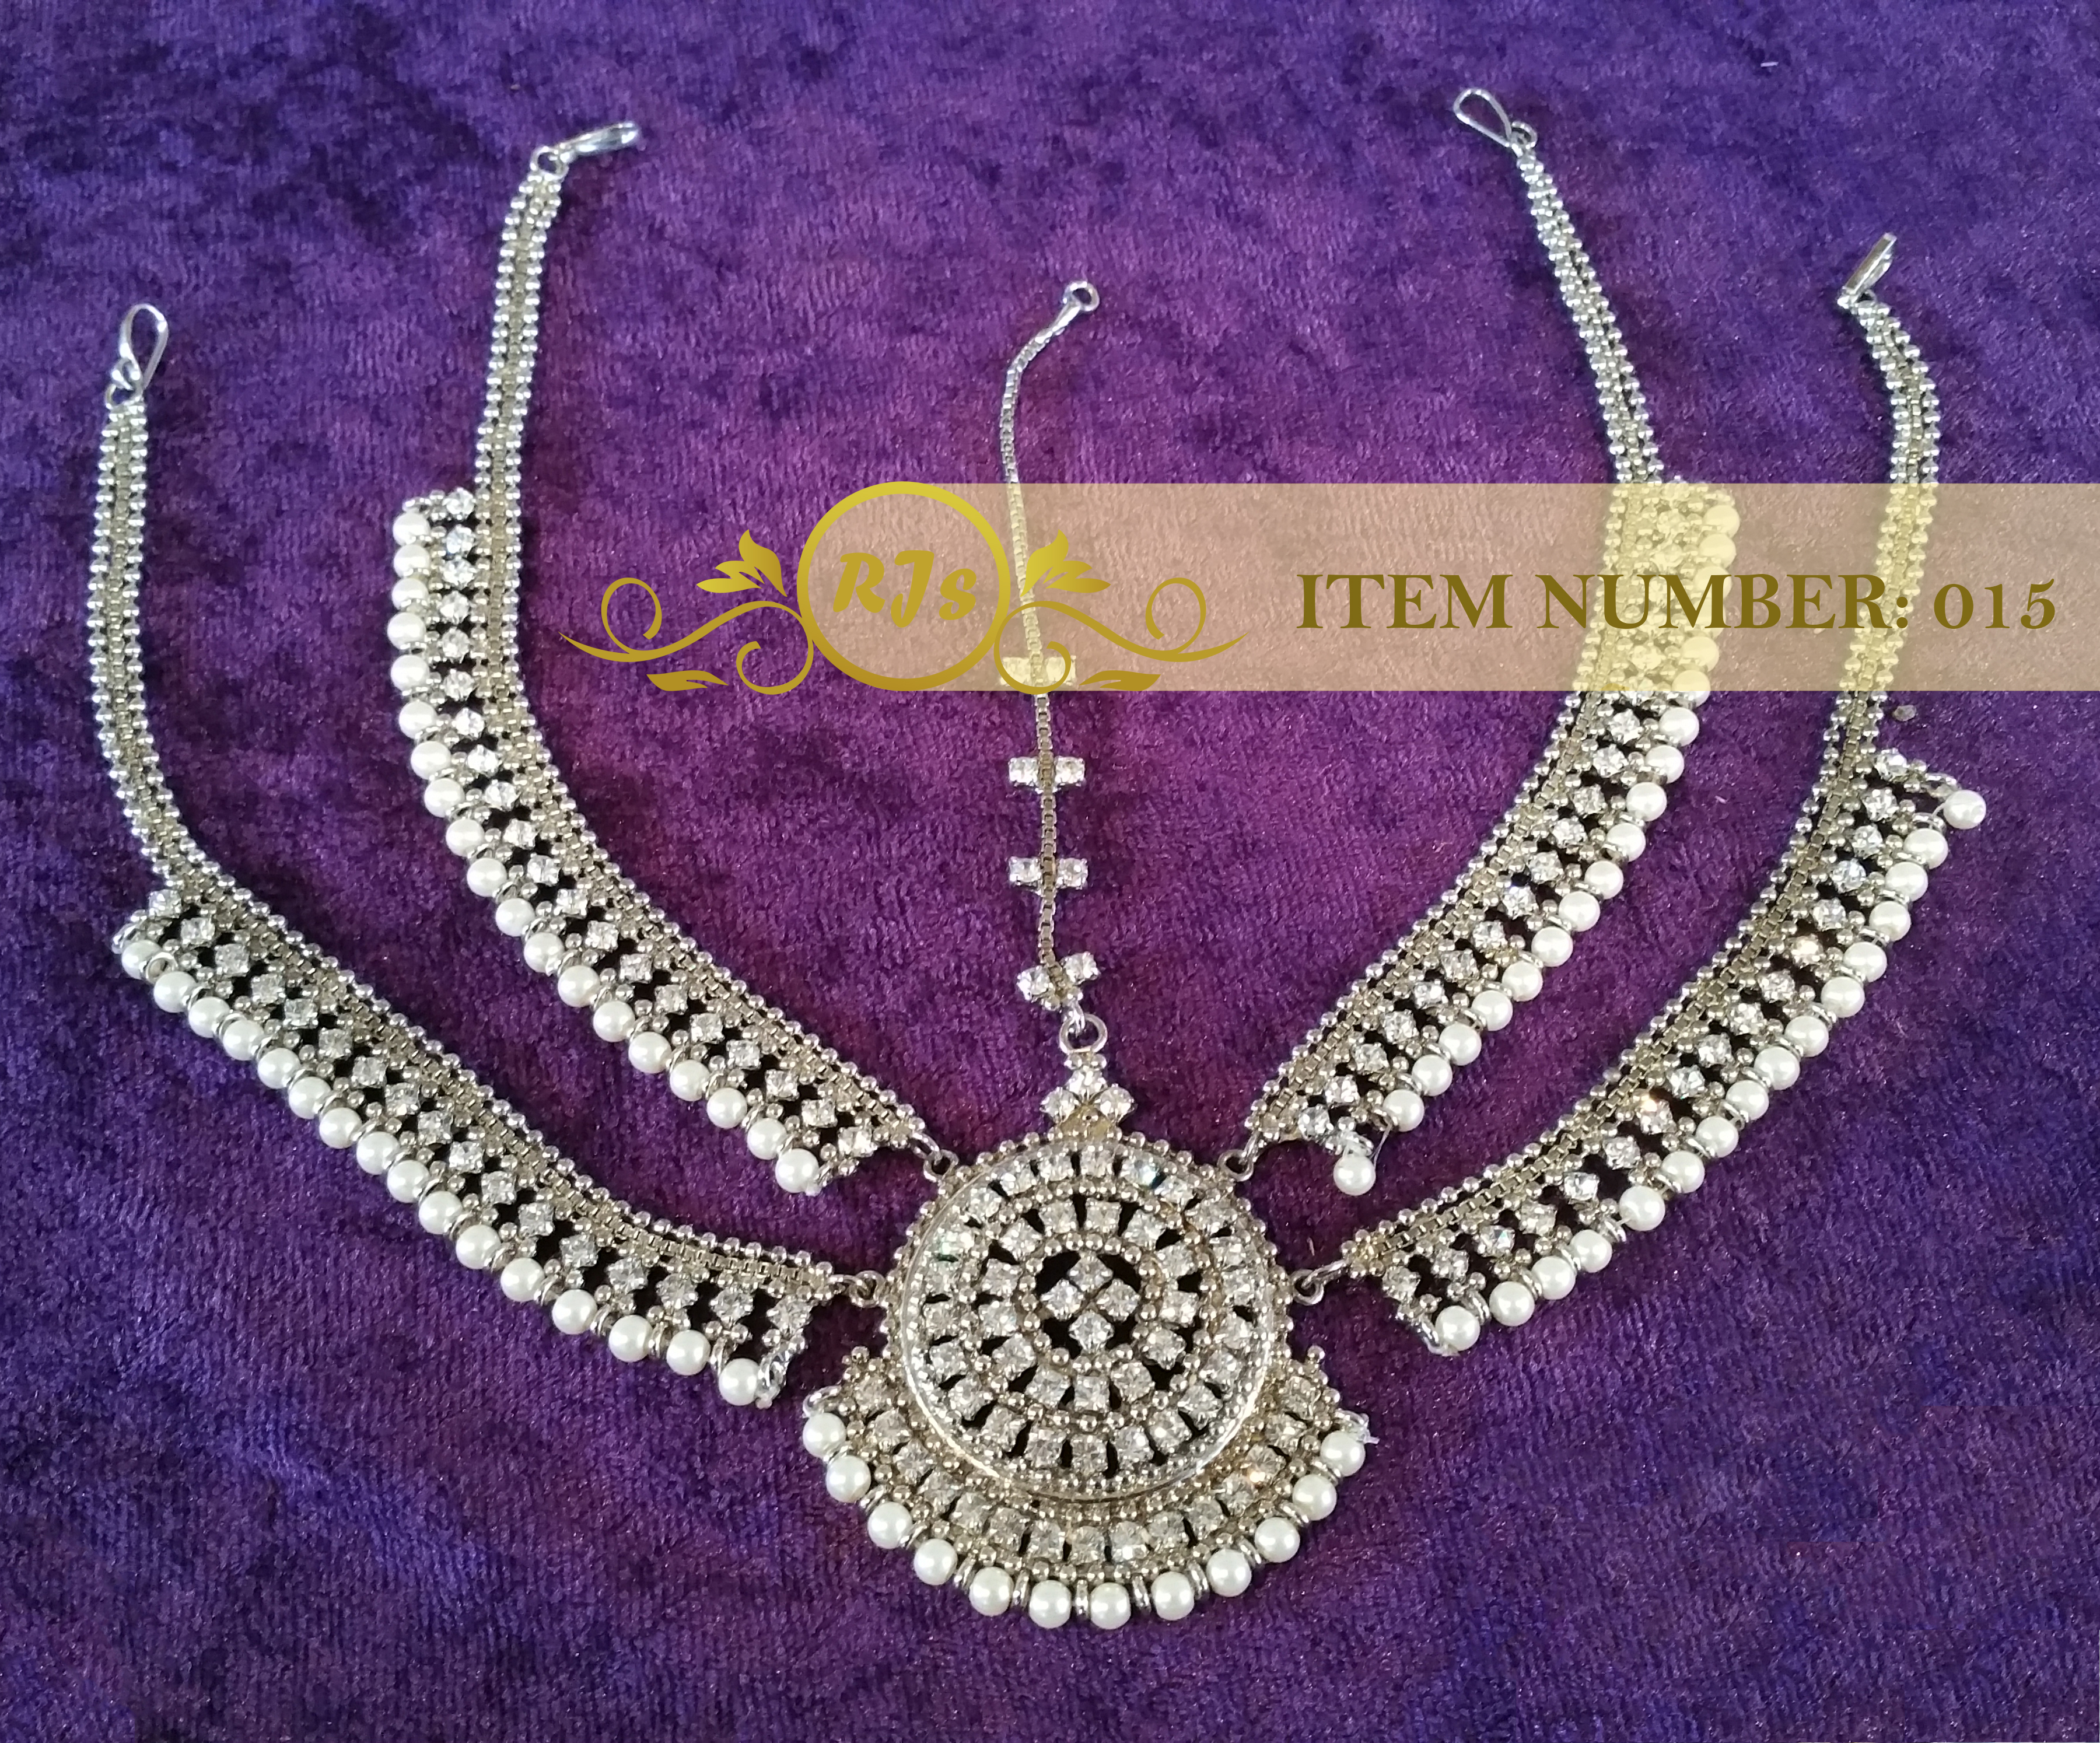 front matha pati - head jewellery - silver bridal matha pati - wholesale Pakistani jewellery - bespoke Pakistani jewellery